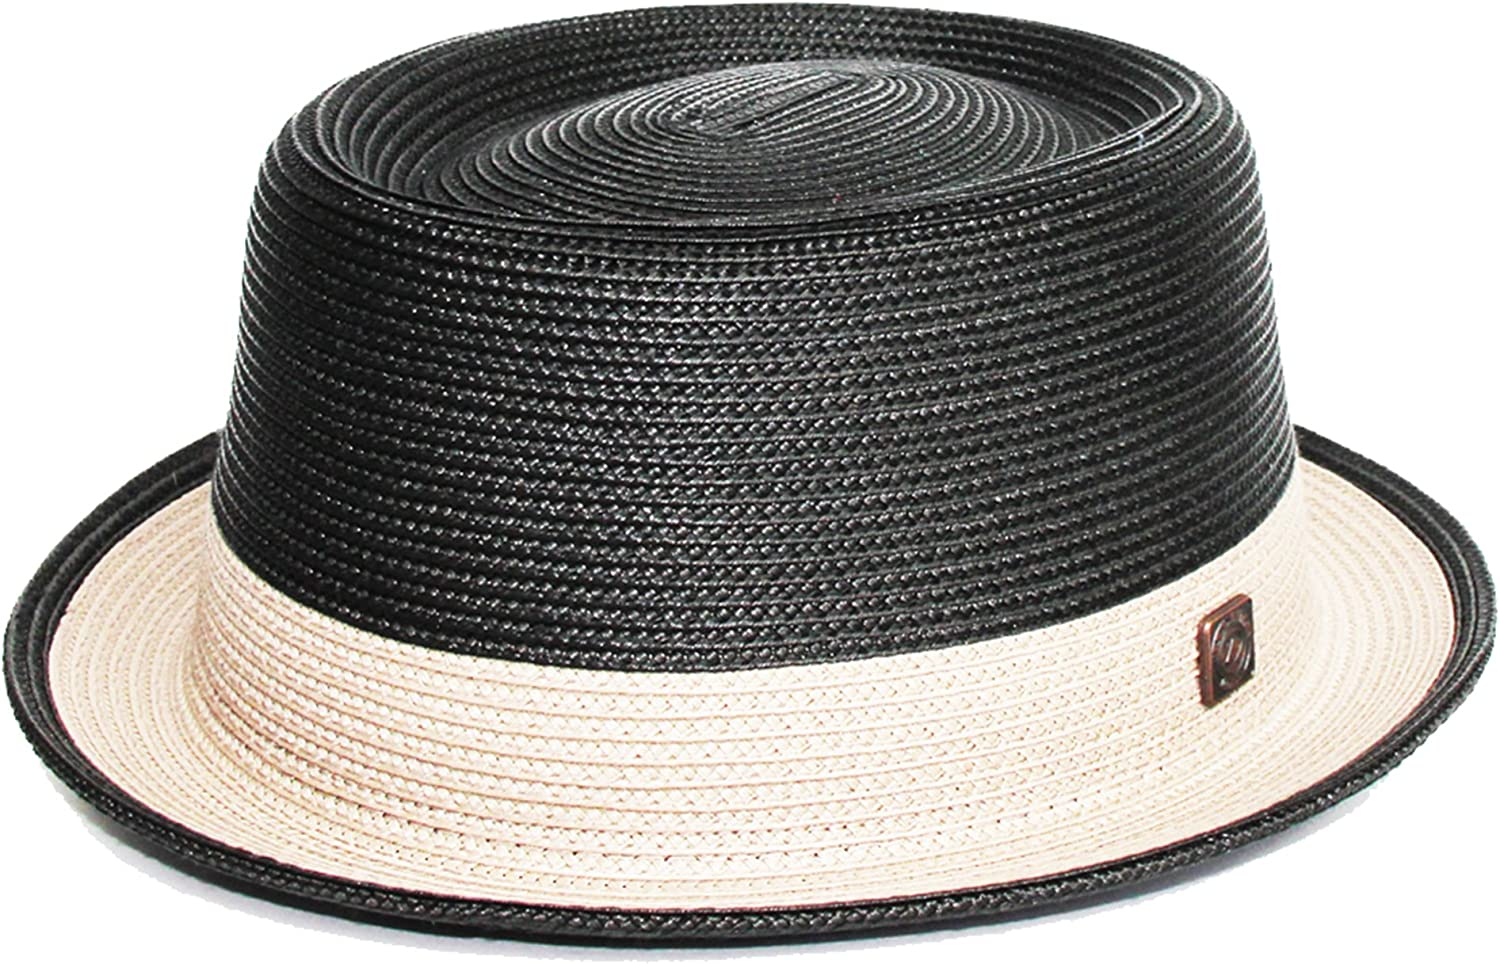 DASMARCA Mens Crushable Packable Felt Fedora Hat